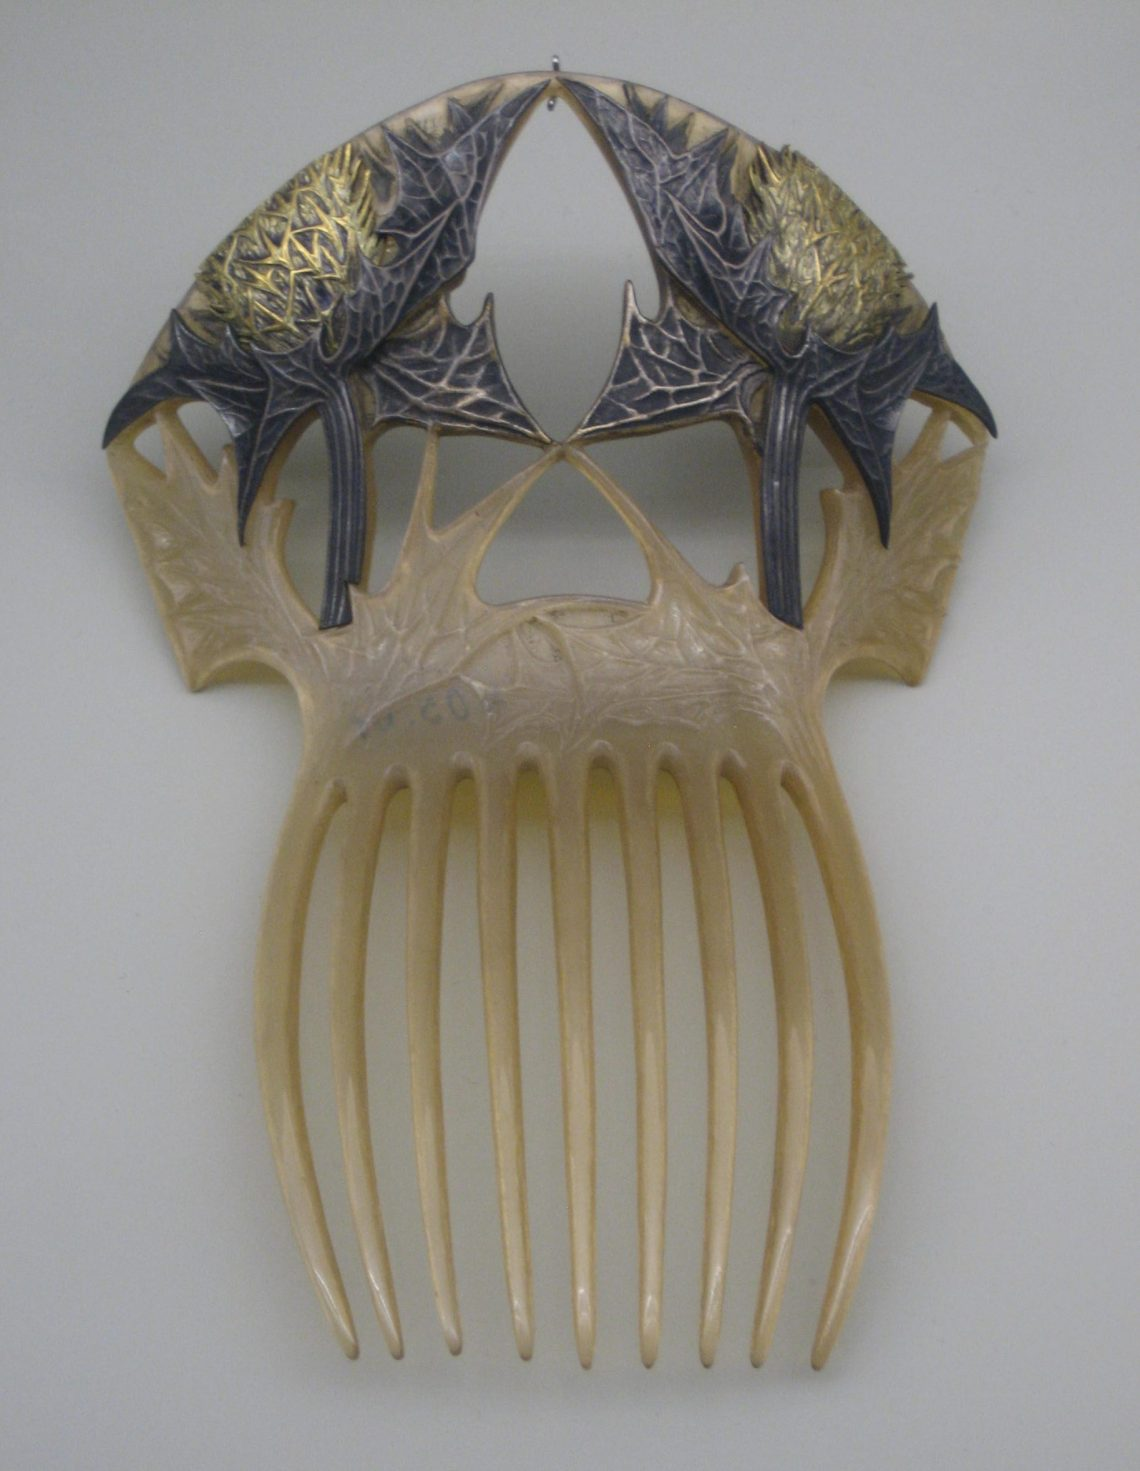 René Lalique, kam, 1900. Collectie Grassimuseum. Foto Esther Doornbusch©